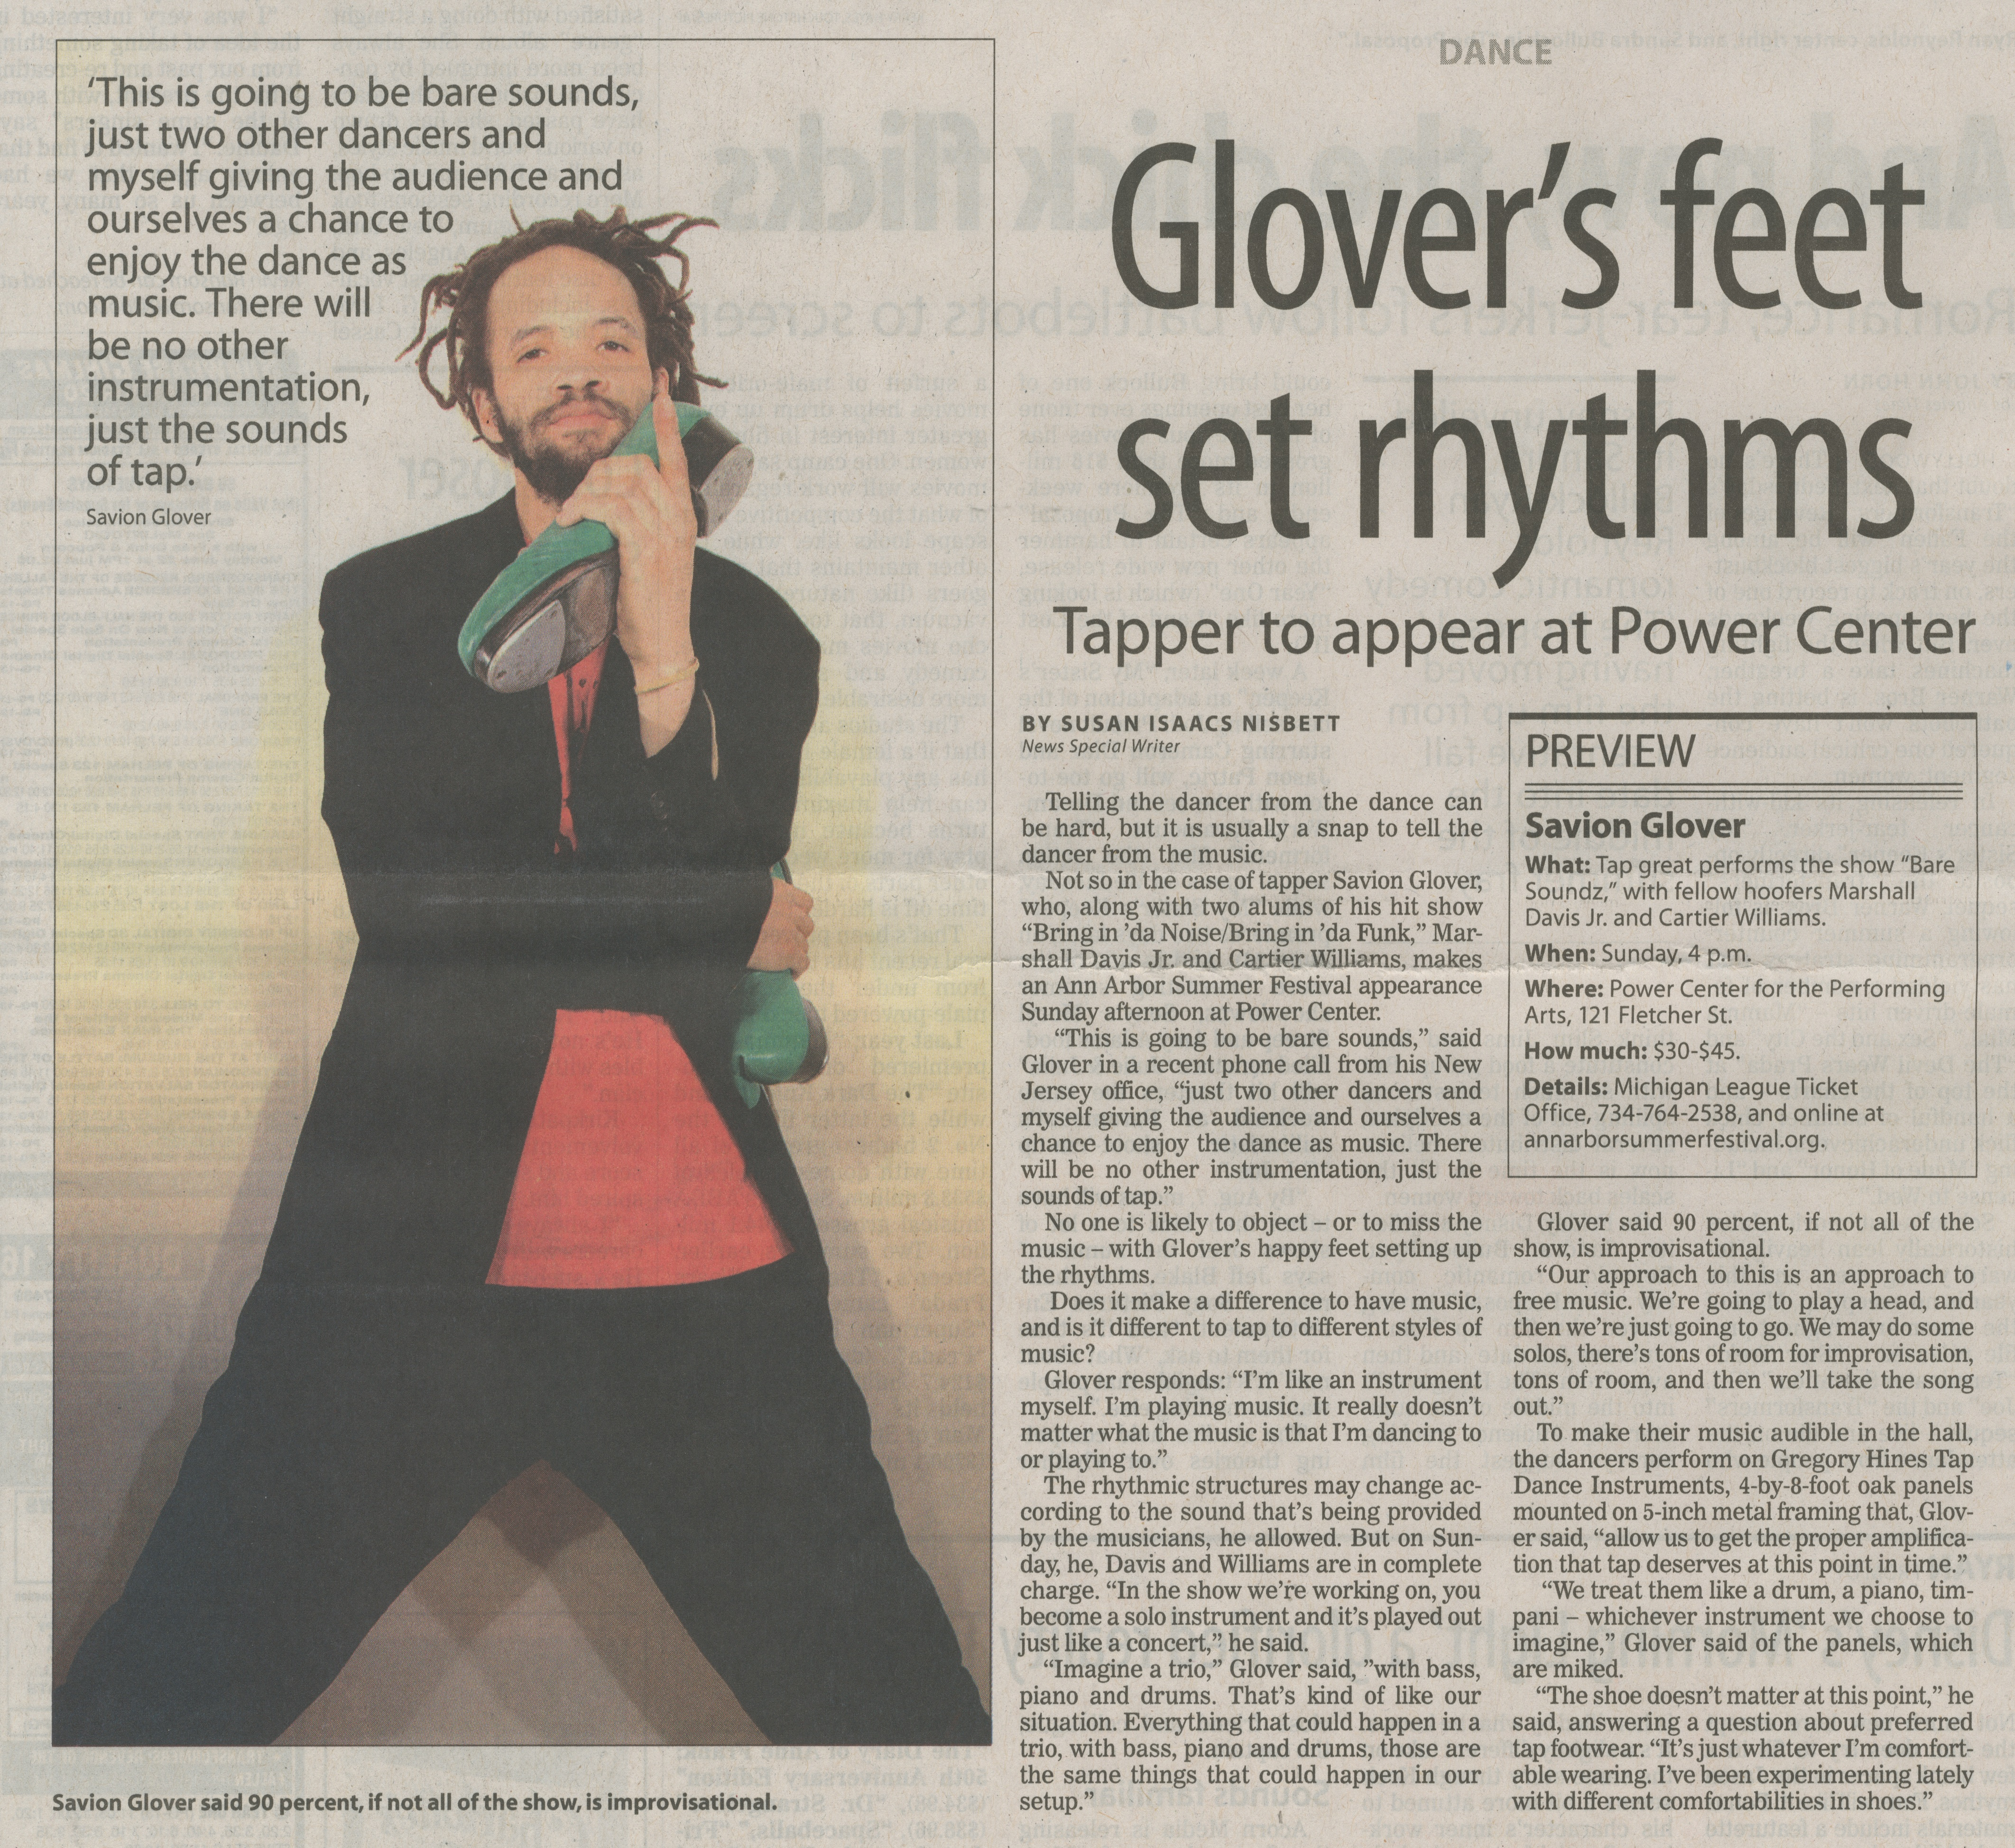 Glover's feet set rhythms image